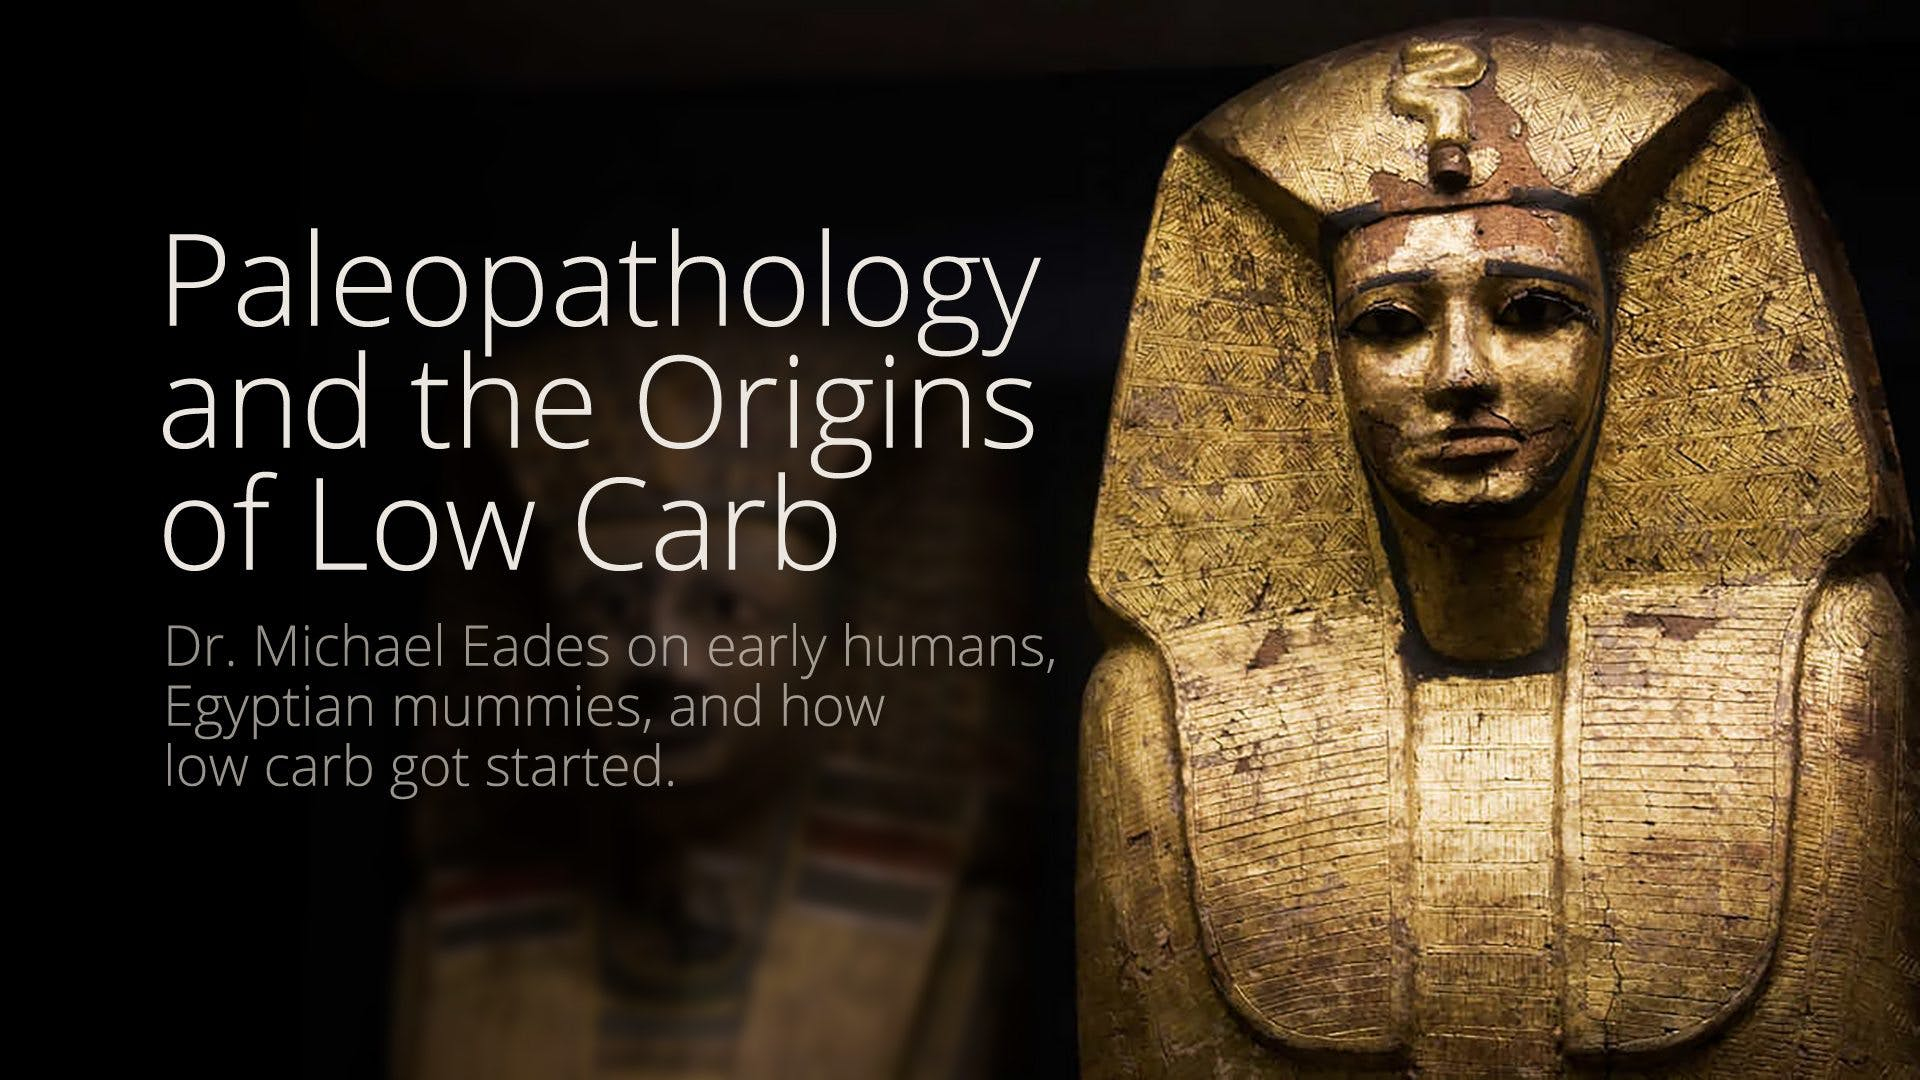 Paleopathology and the origins of low carb – Dr. Michael Eades